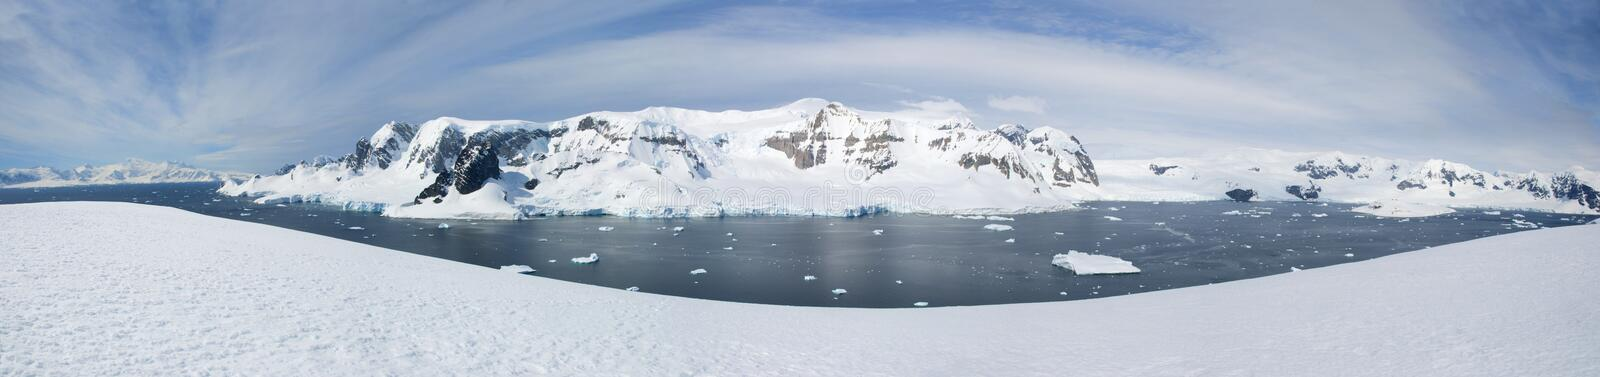 Panorama antarctique photos libres de droits